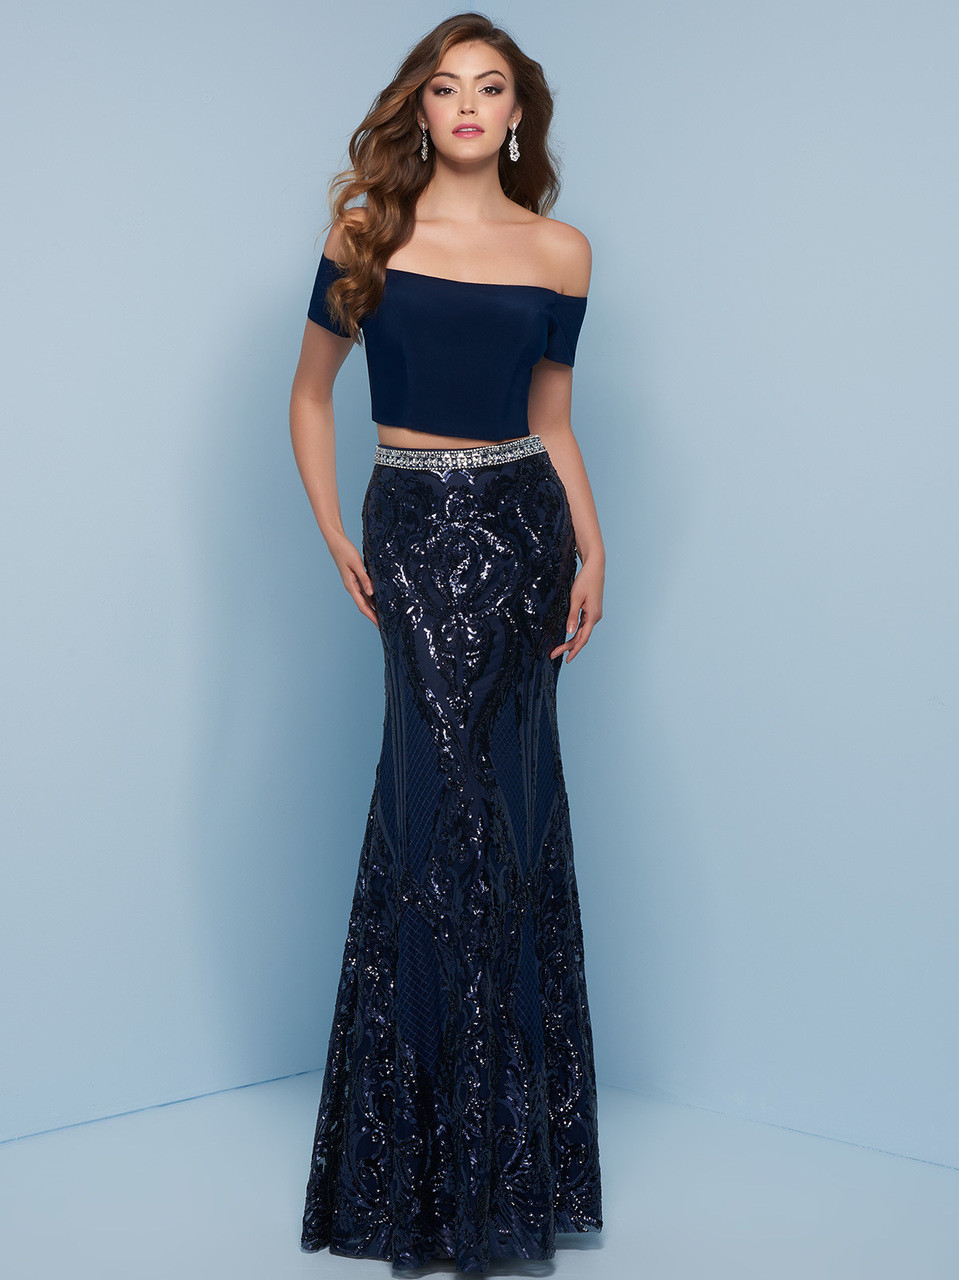 7d2dd8cfc10 navy two piece prom dress with jersey body and sequin skirt Splash j820